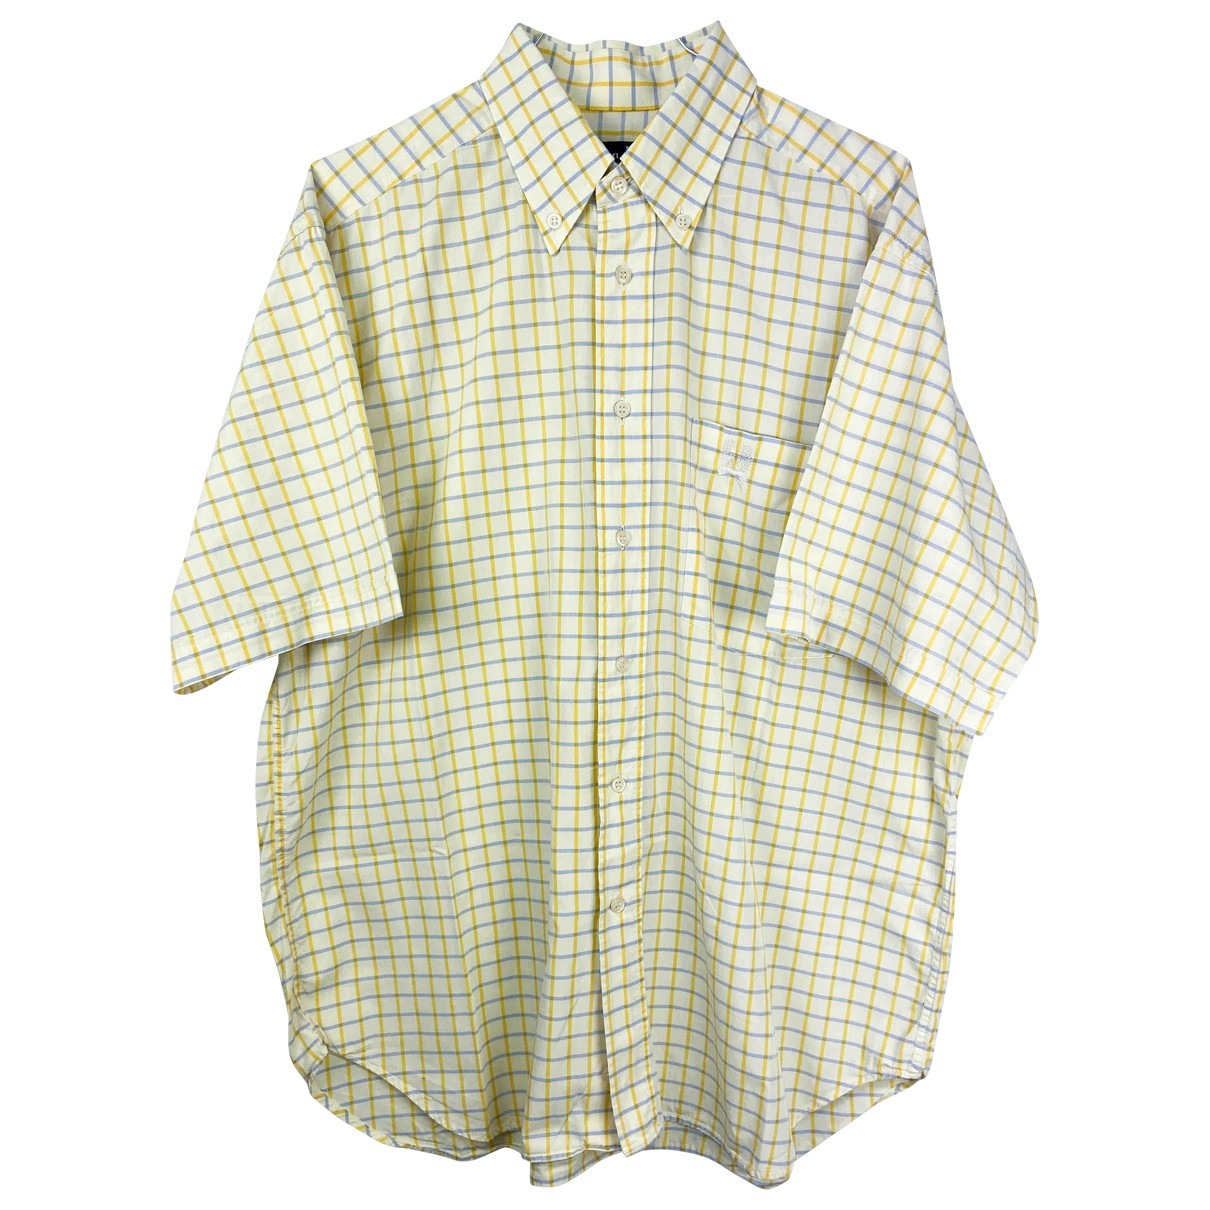 Dior Homme \N Yellow Cotton Shirts for Men M International